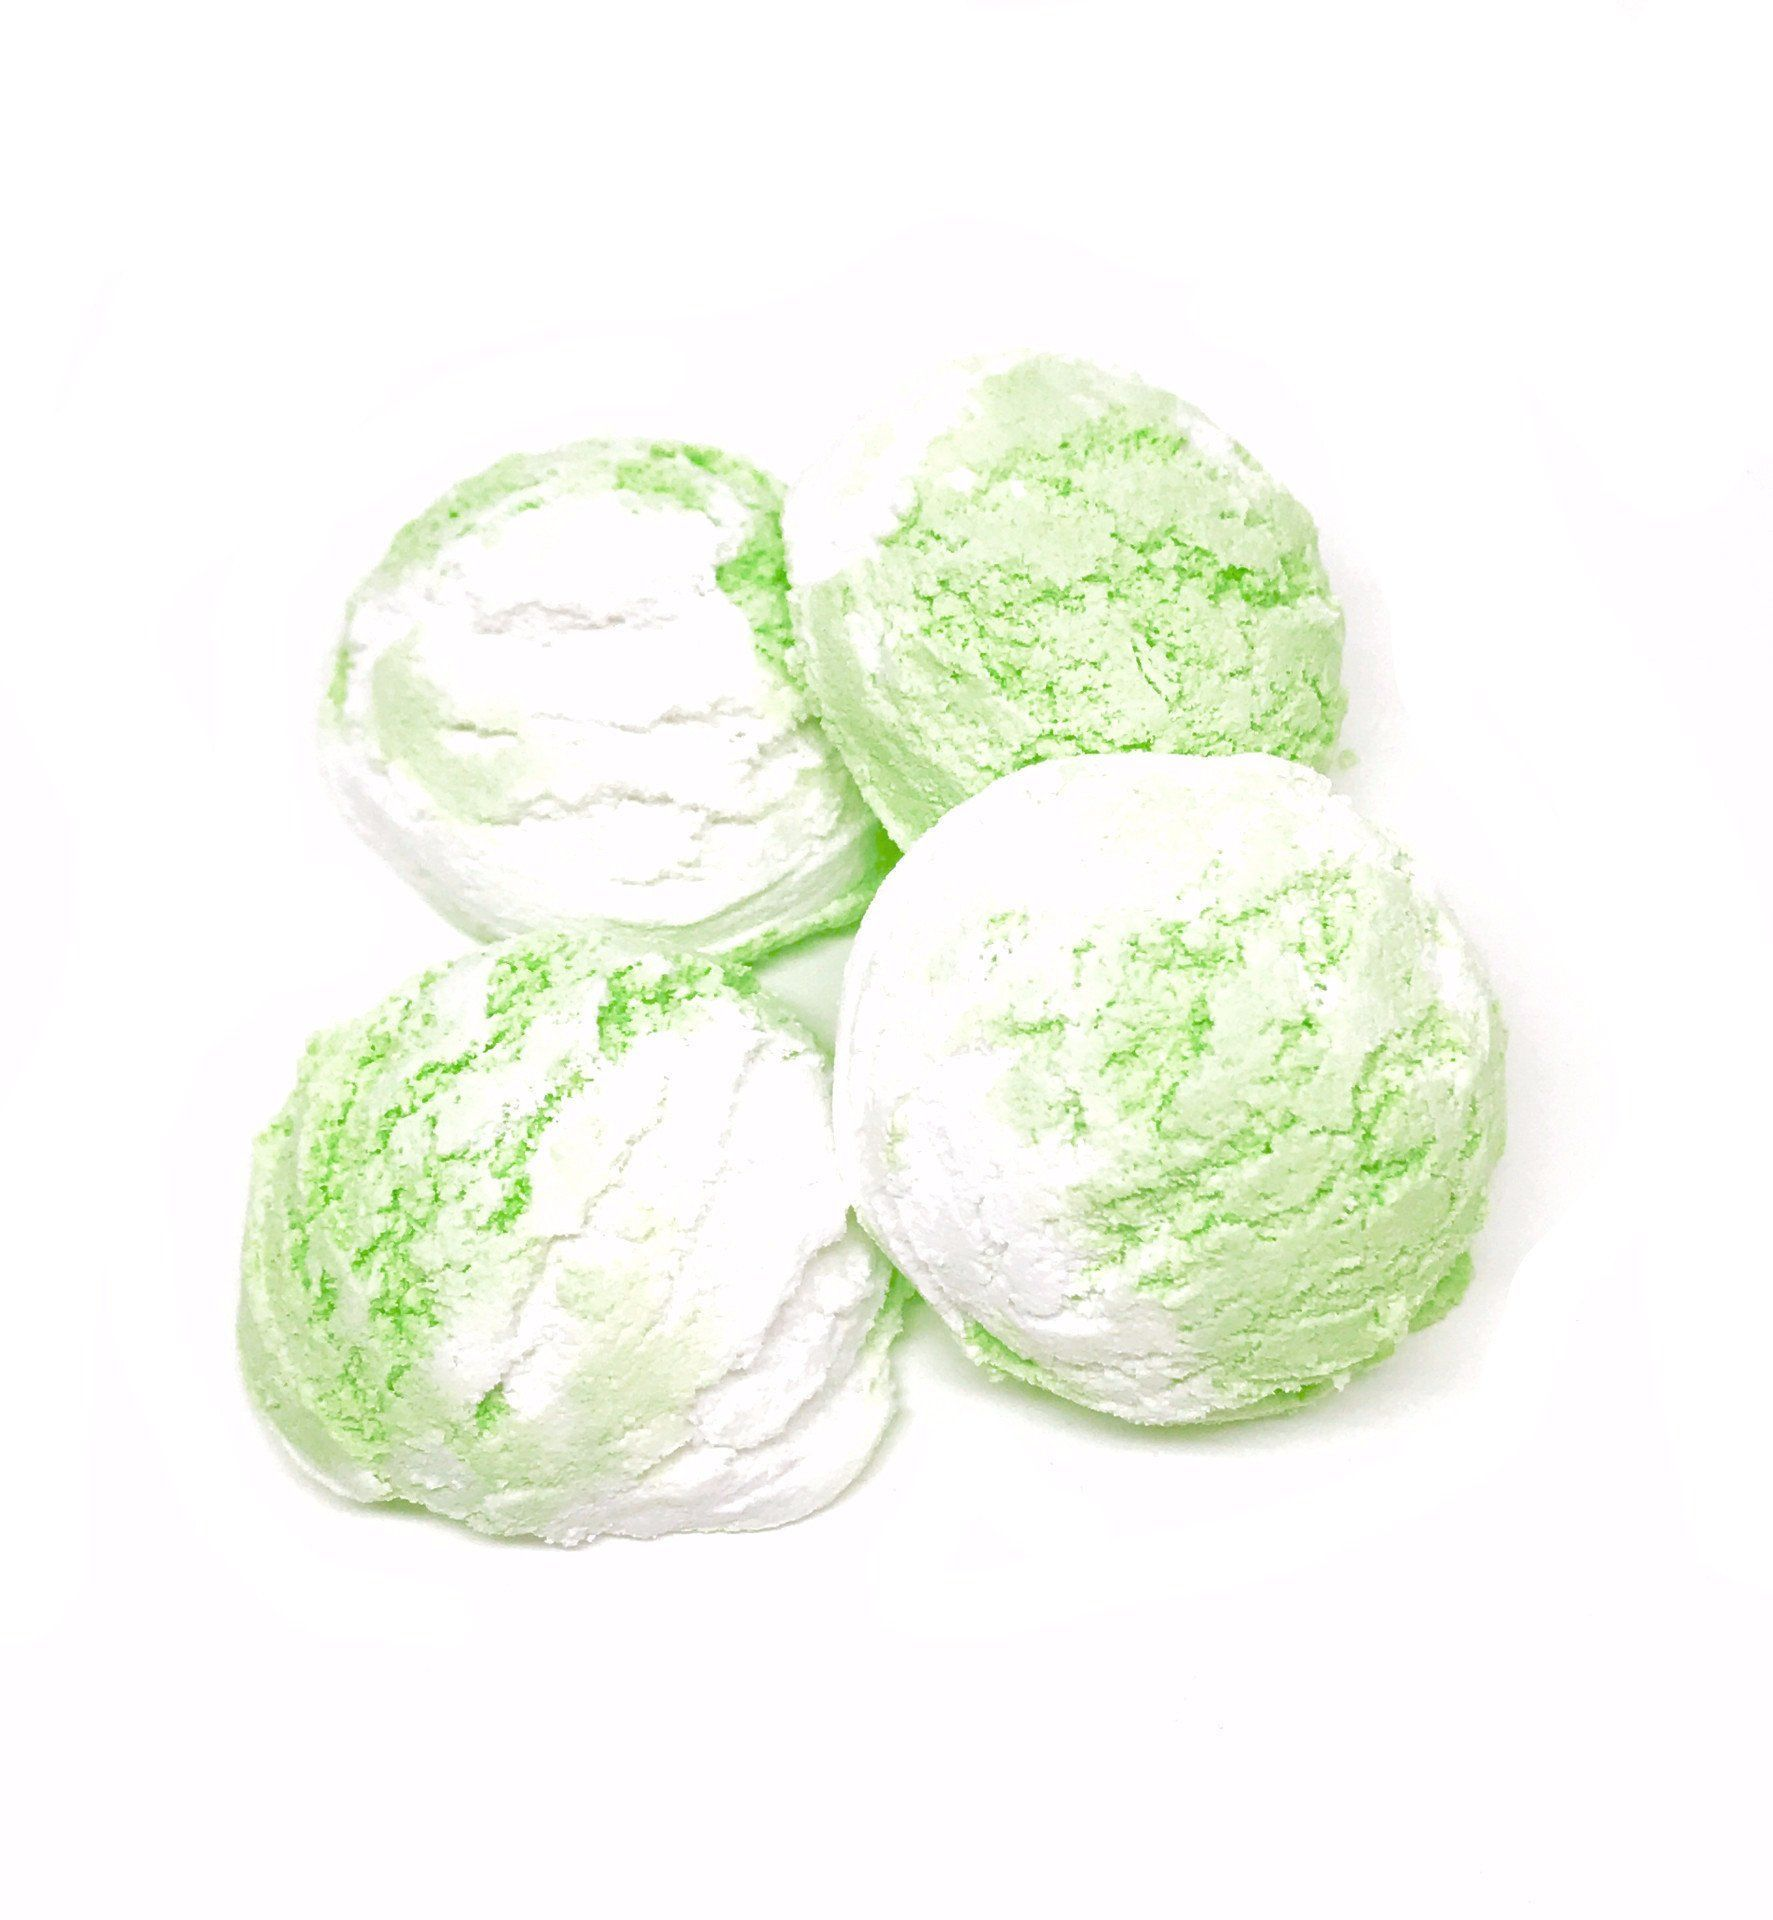 Bubble Scoops - Envy (Green) - 5.5 oz. | Products | Pinterest ...